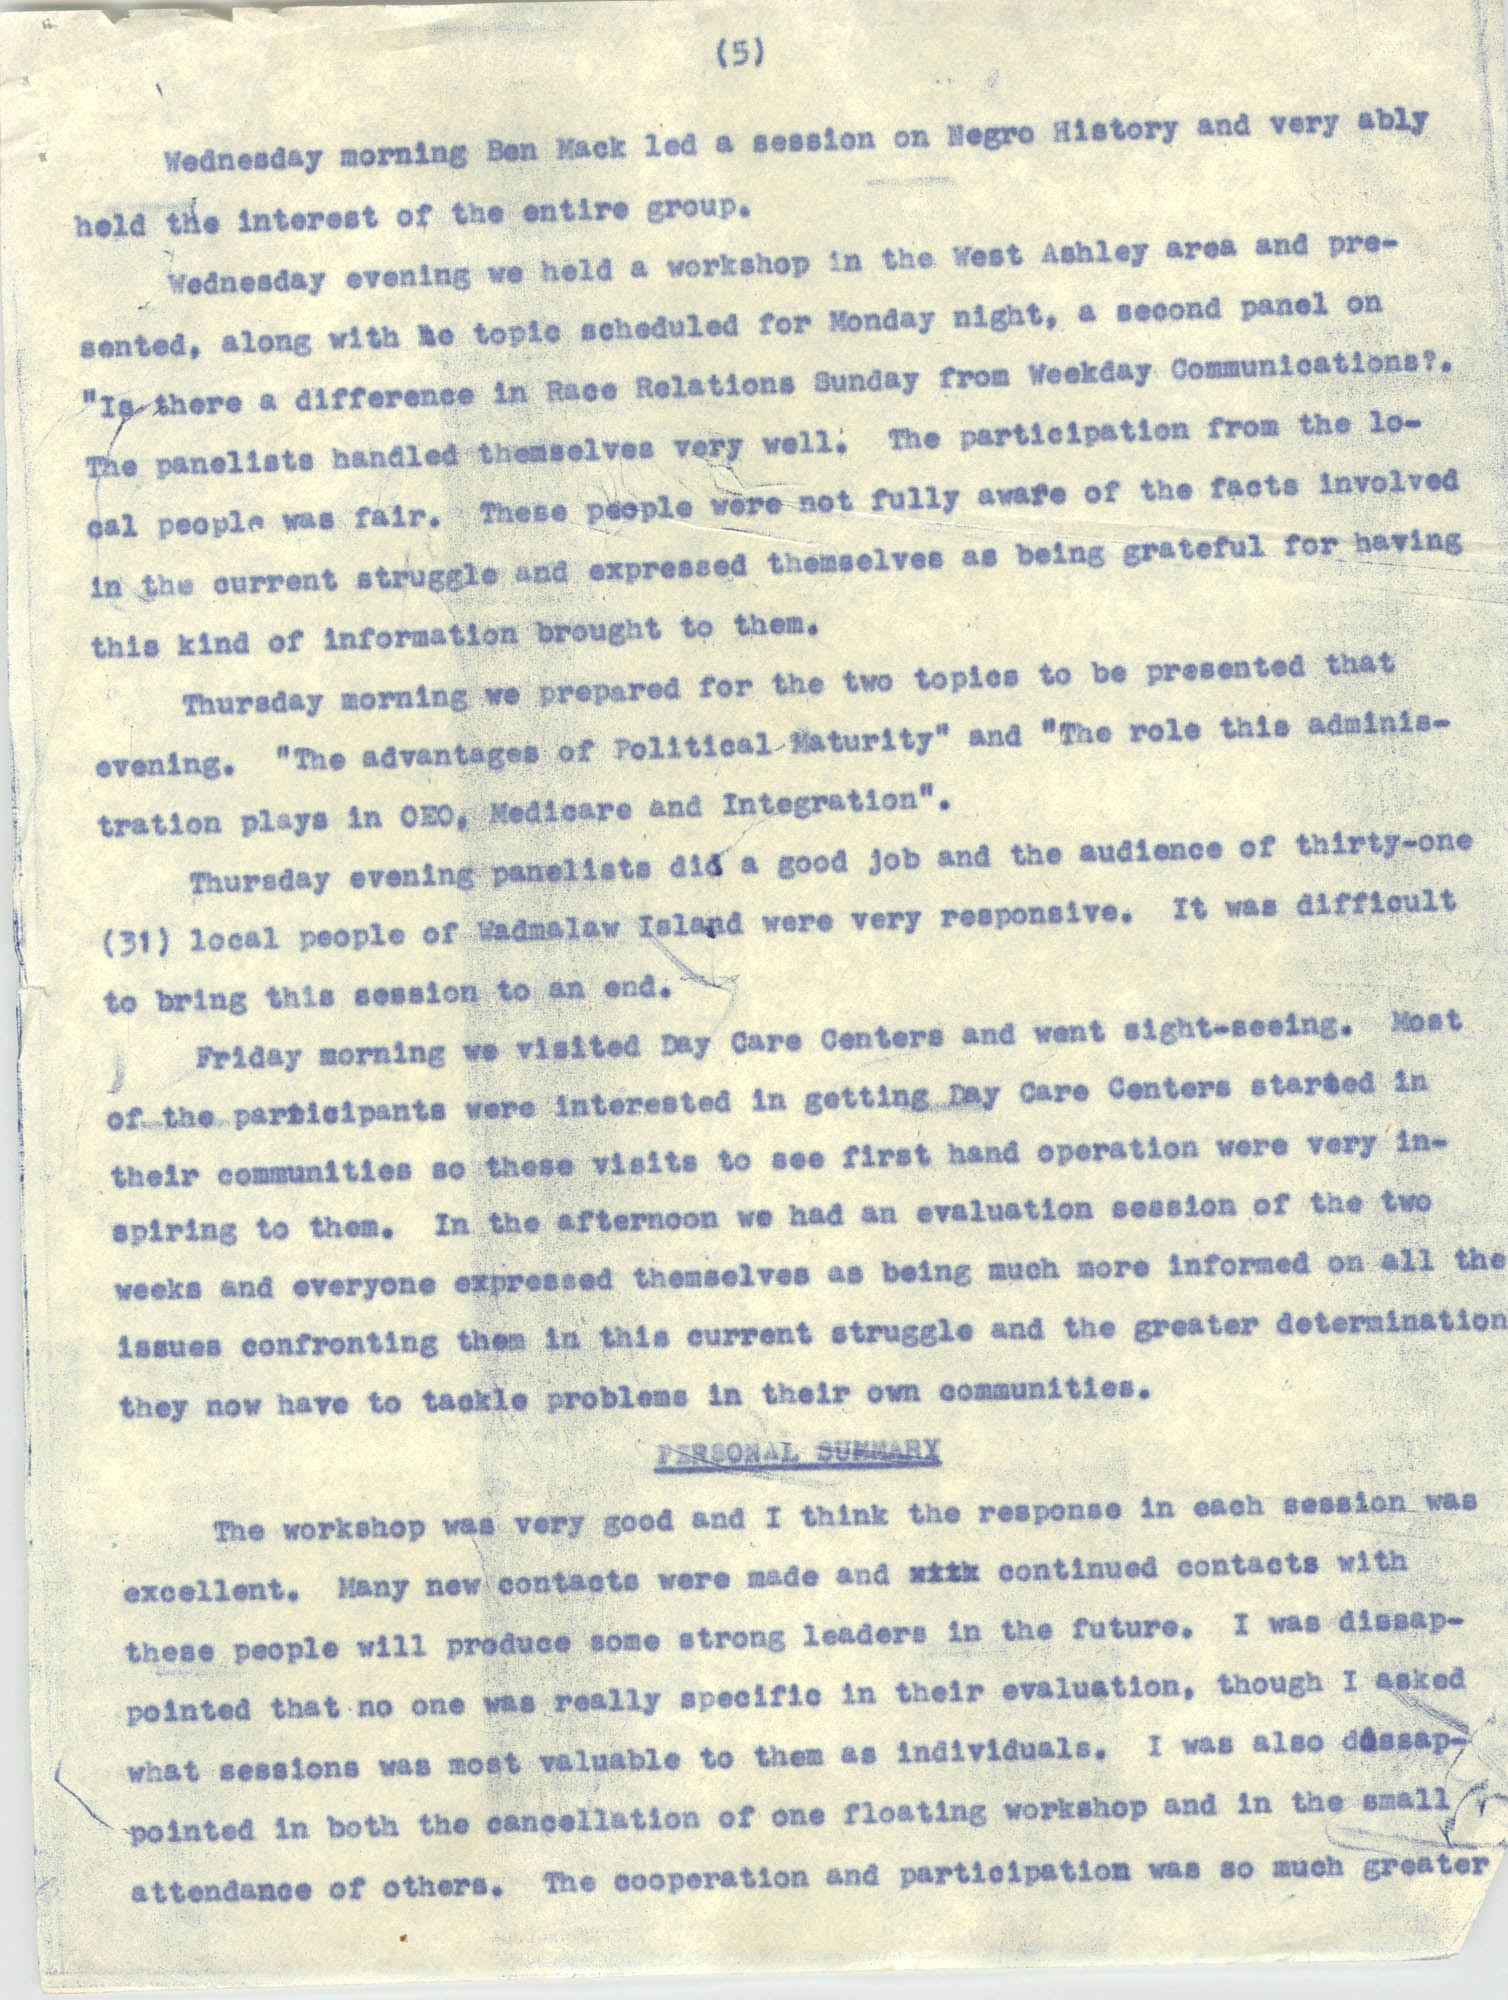 Report on Southwide Voter Education Workshop, 1966, Page 5